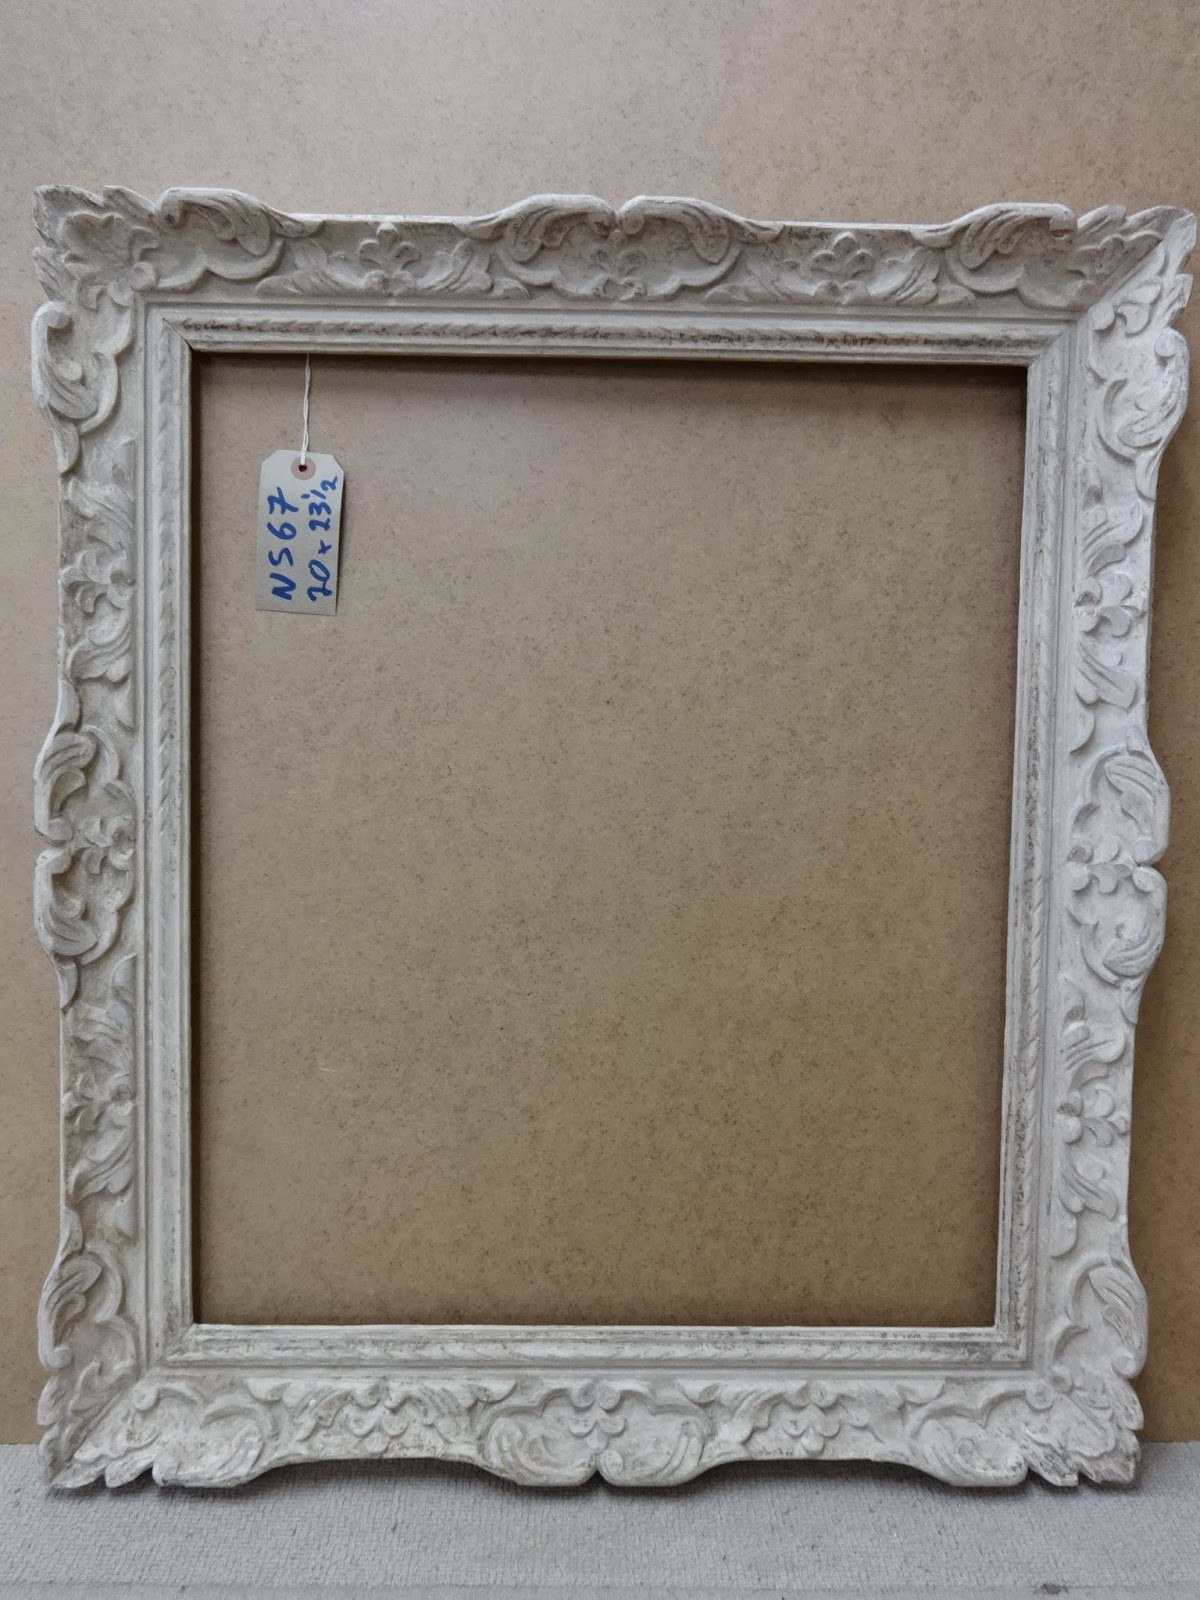 Antique frame sale french carved montparnasse frame french carved montparnasse frame jeuxipadfo Image collections